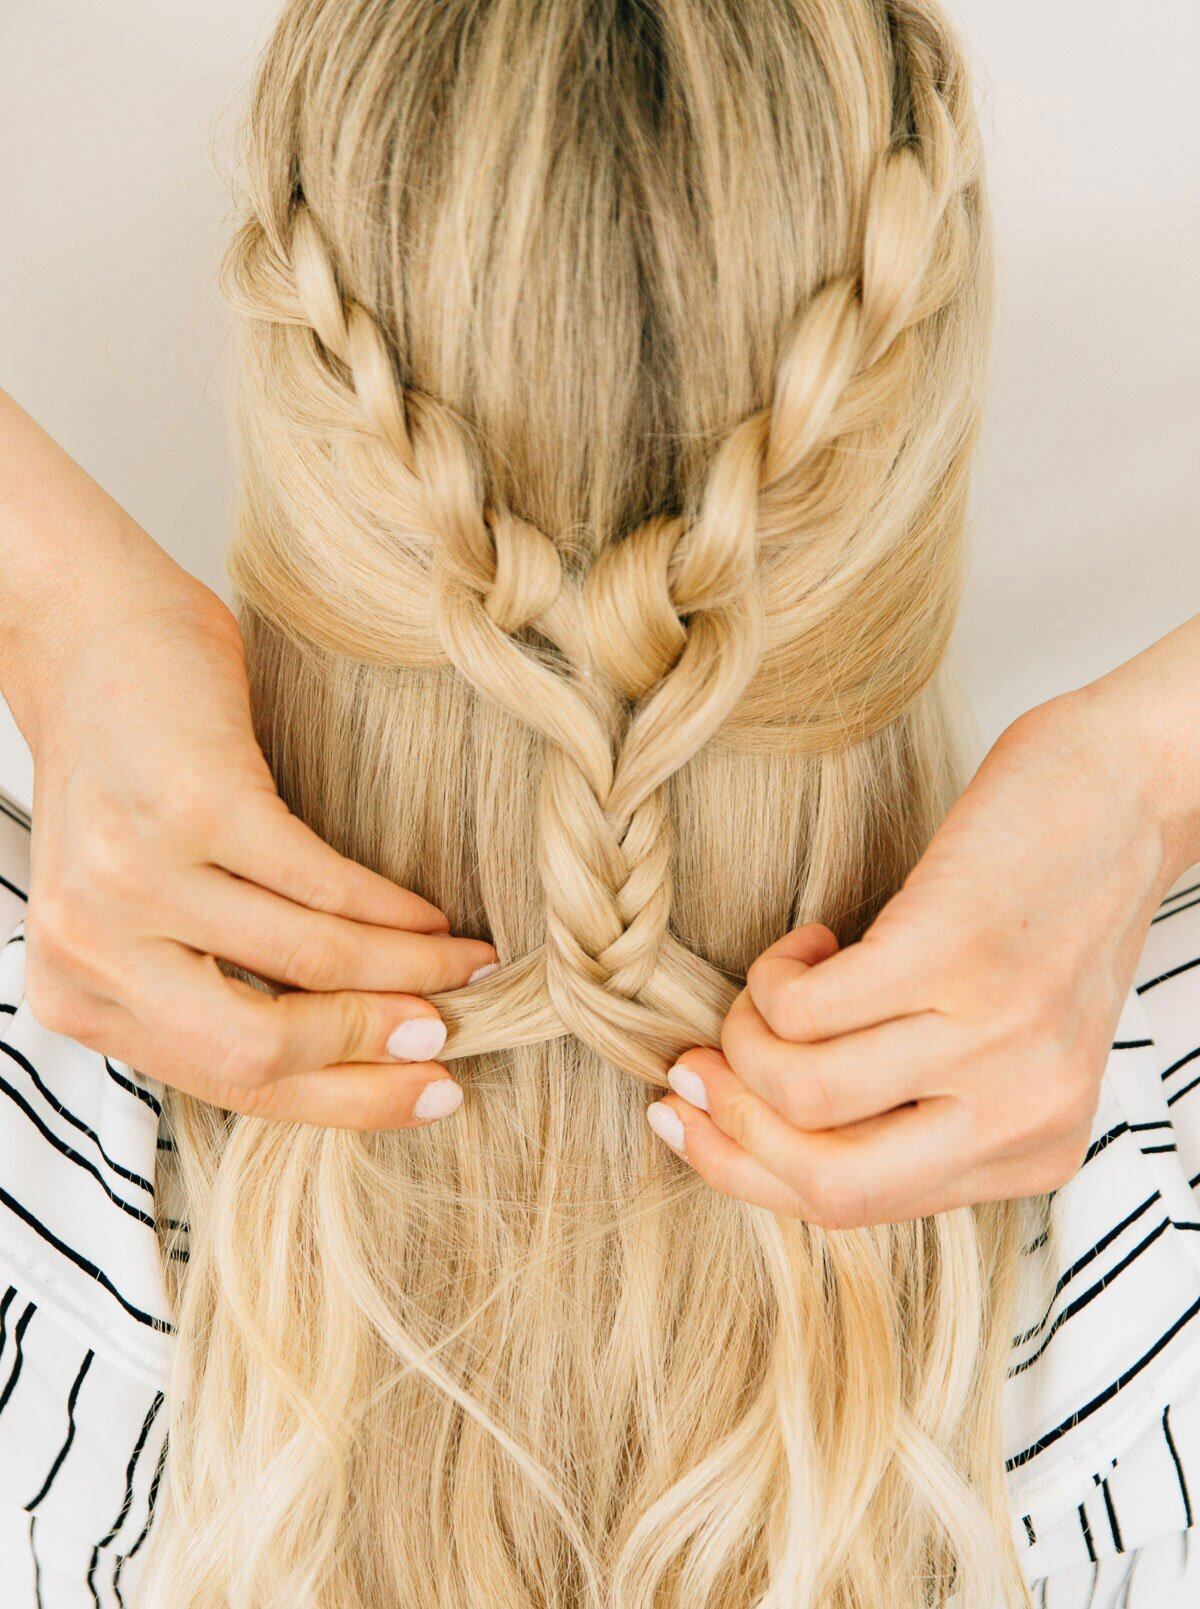 Groovy Beautiful Braid Hairstyles Thatill Liven Up Your Hair Routine Schematic Wiring Diagrams Phreekkolirunnerswayorg